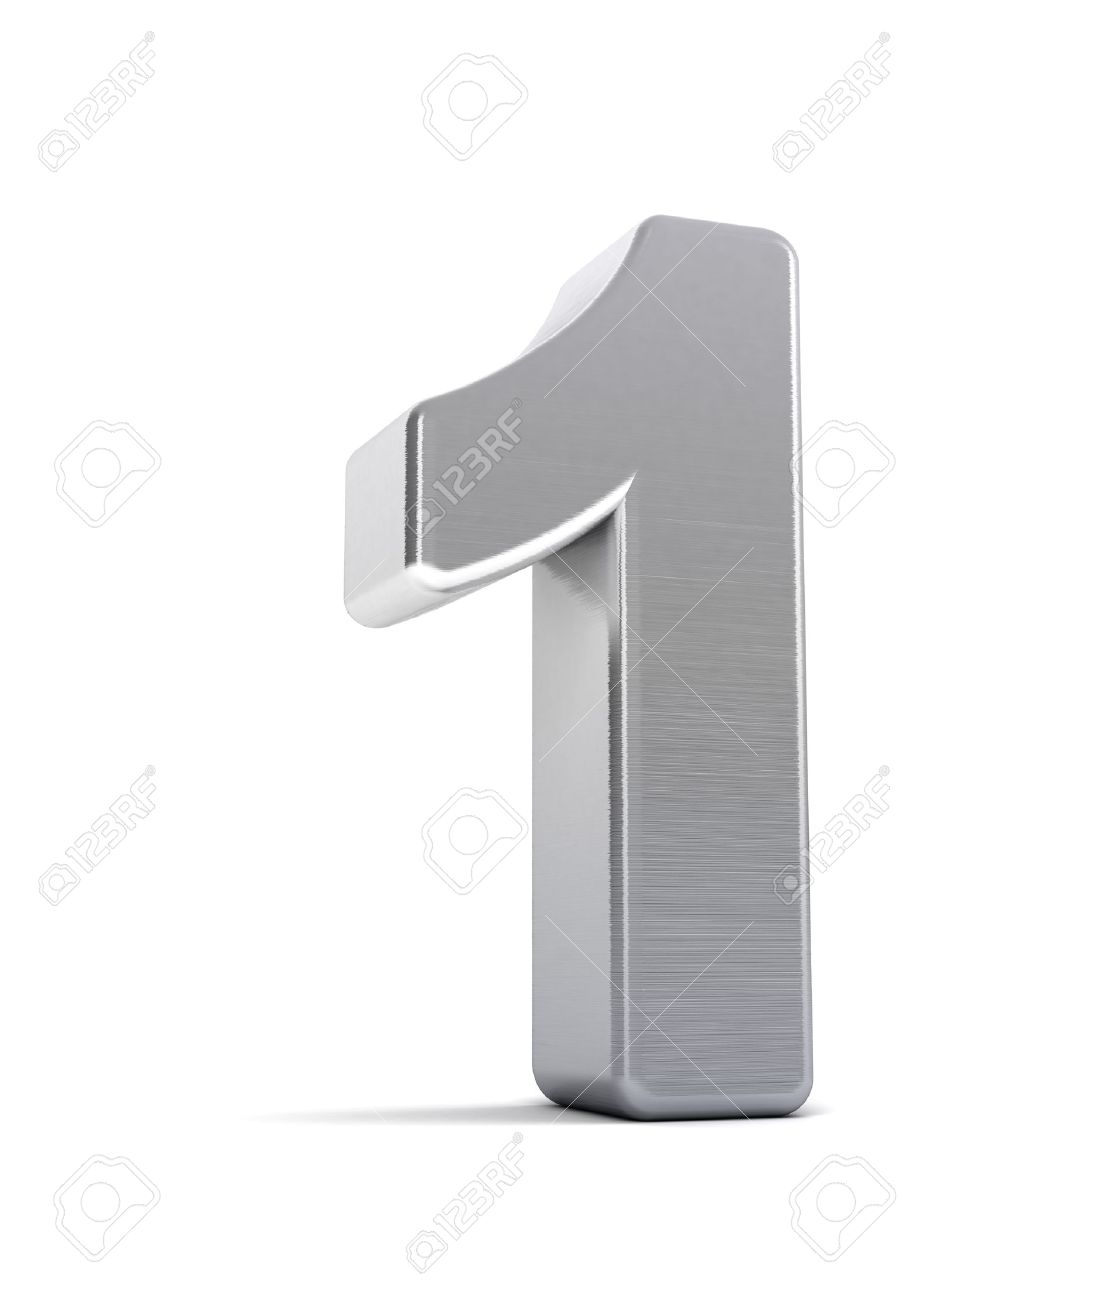 The number one as a brushed chrome object over white - 8853458